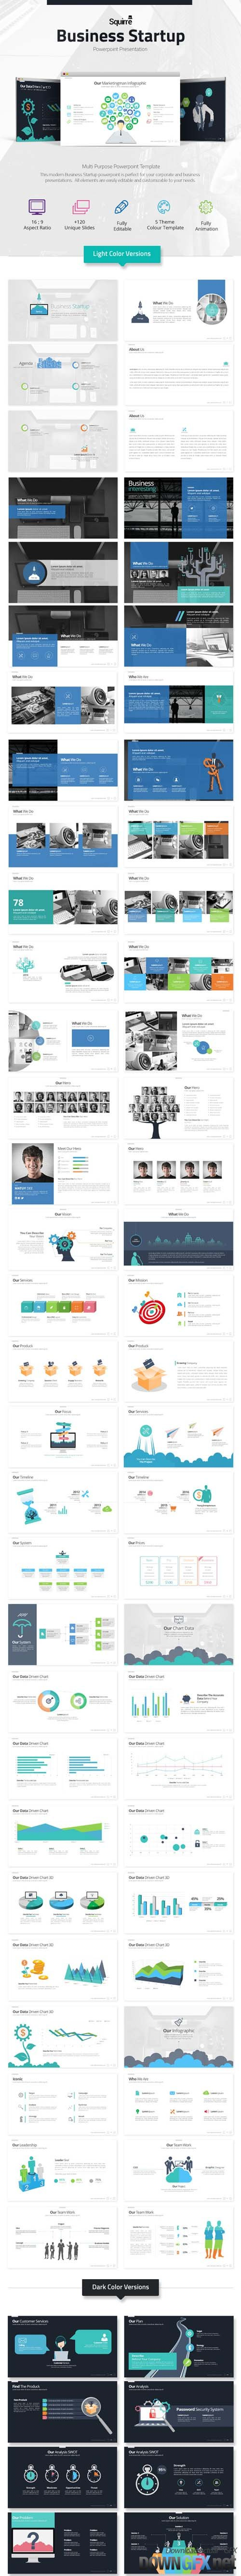 GR - Business Startup Powerpoint Presentation 10790299